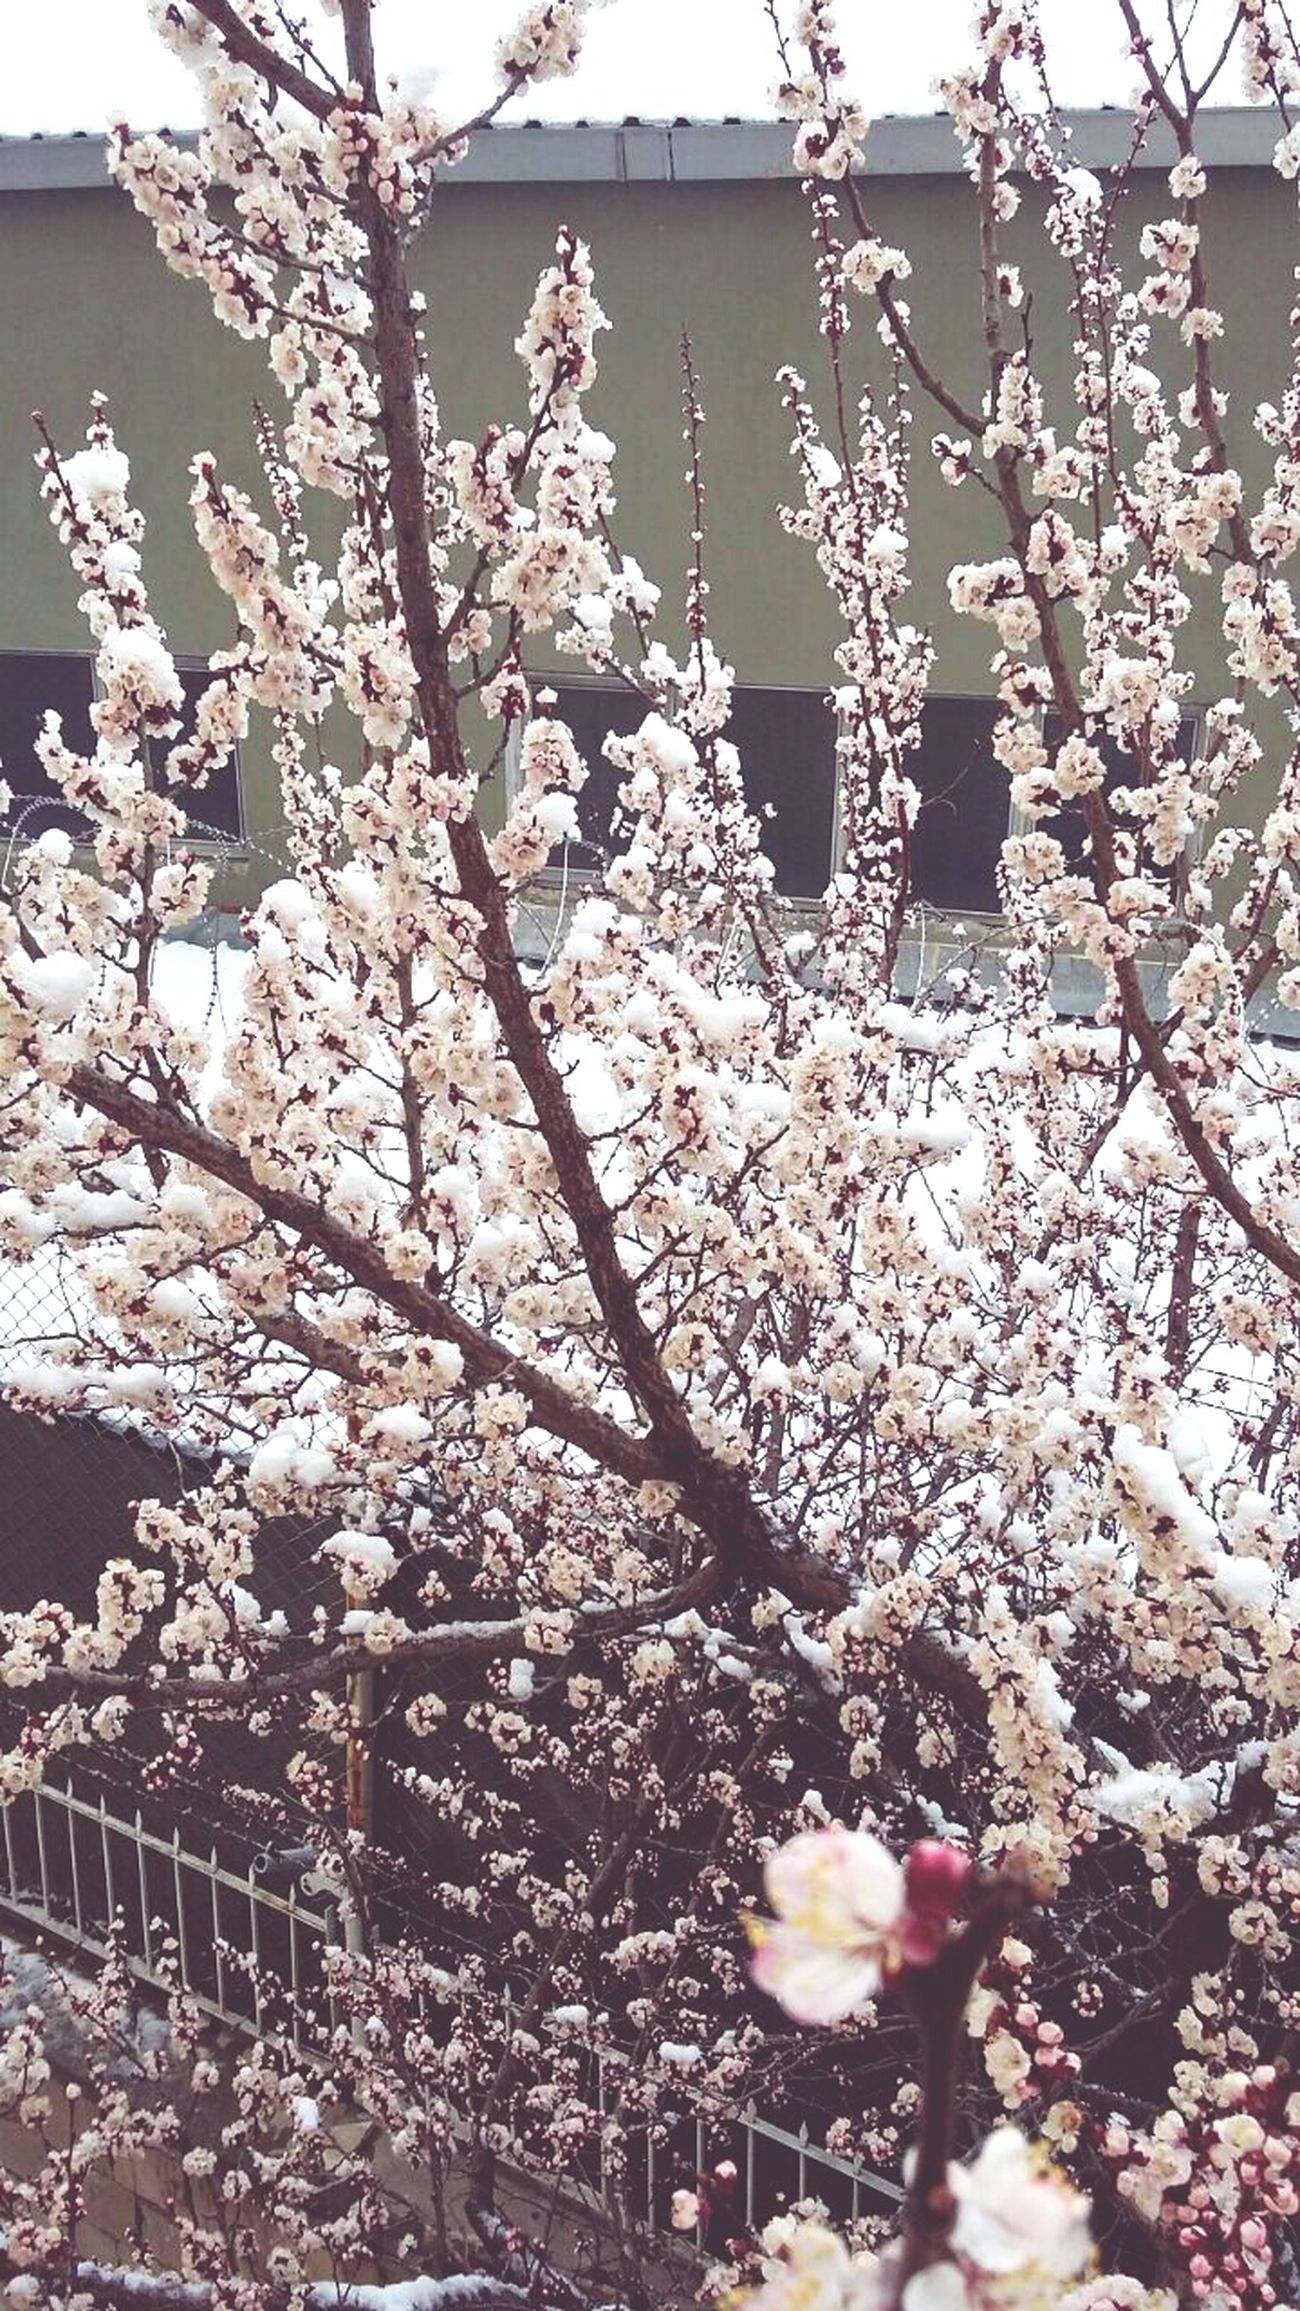 Cold Winter ❄⛄ Flowers :) Snow And Tree Konya Meram